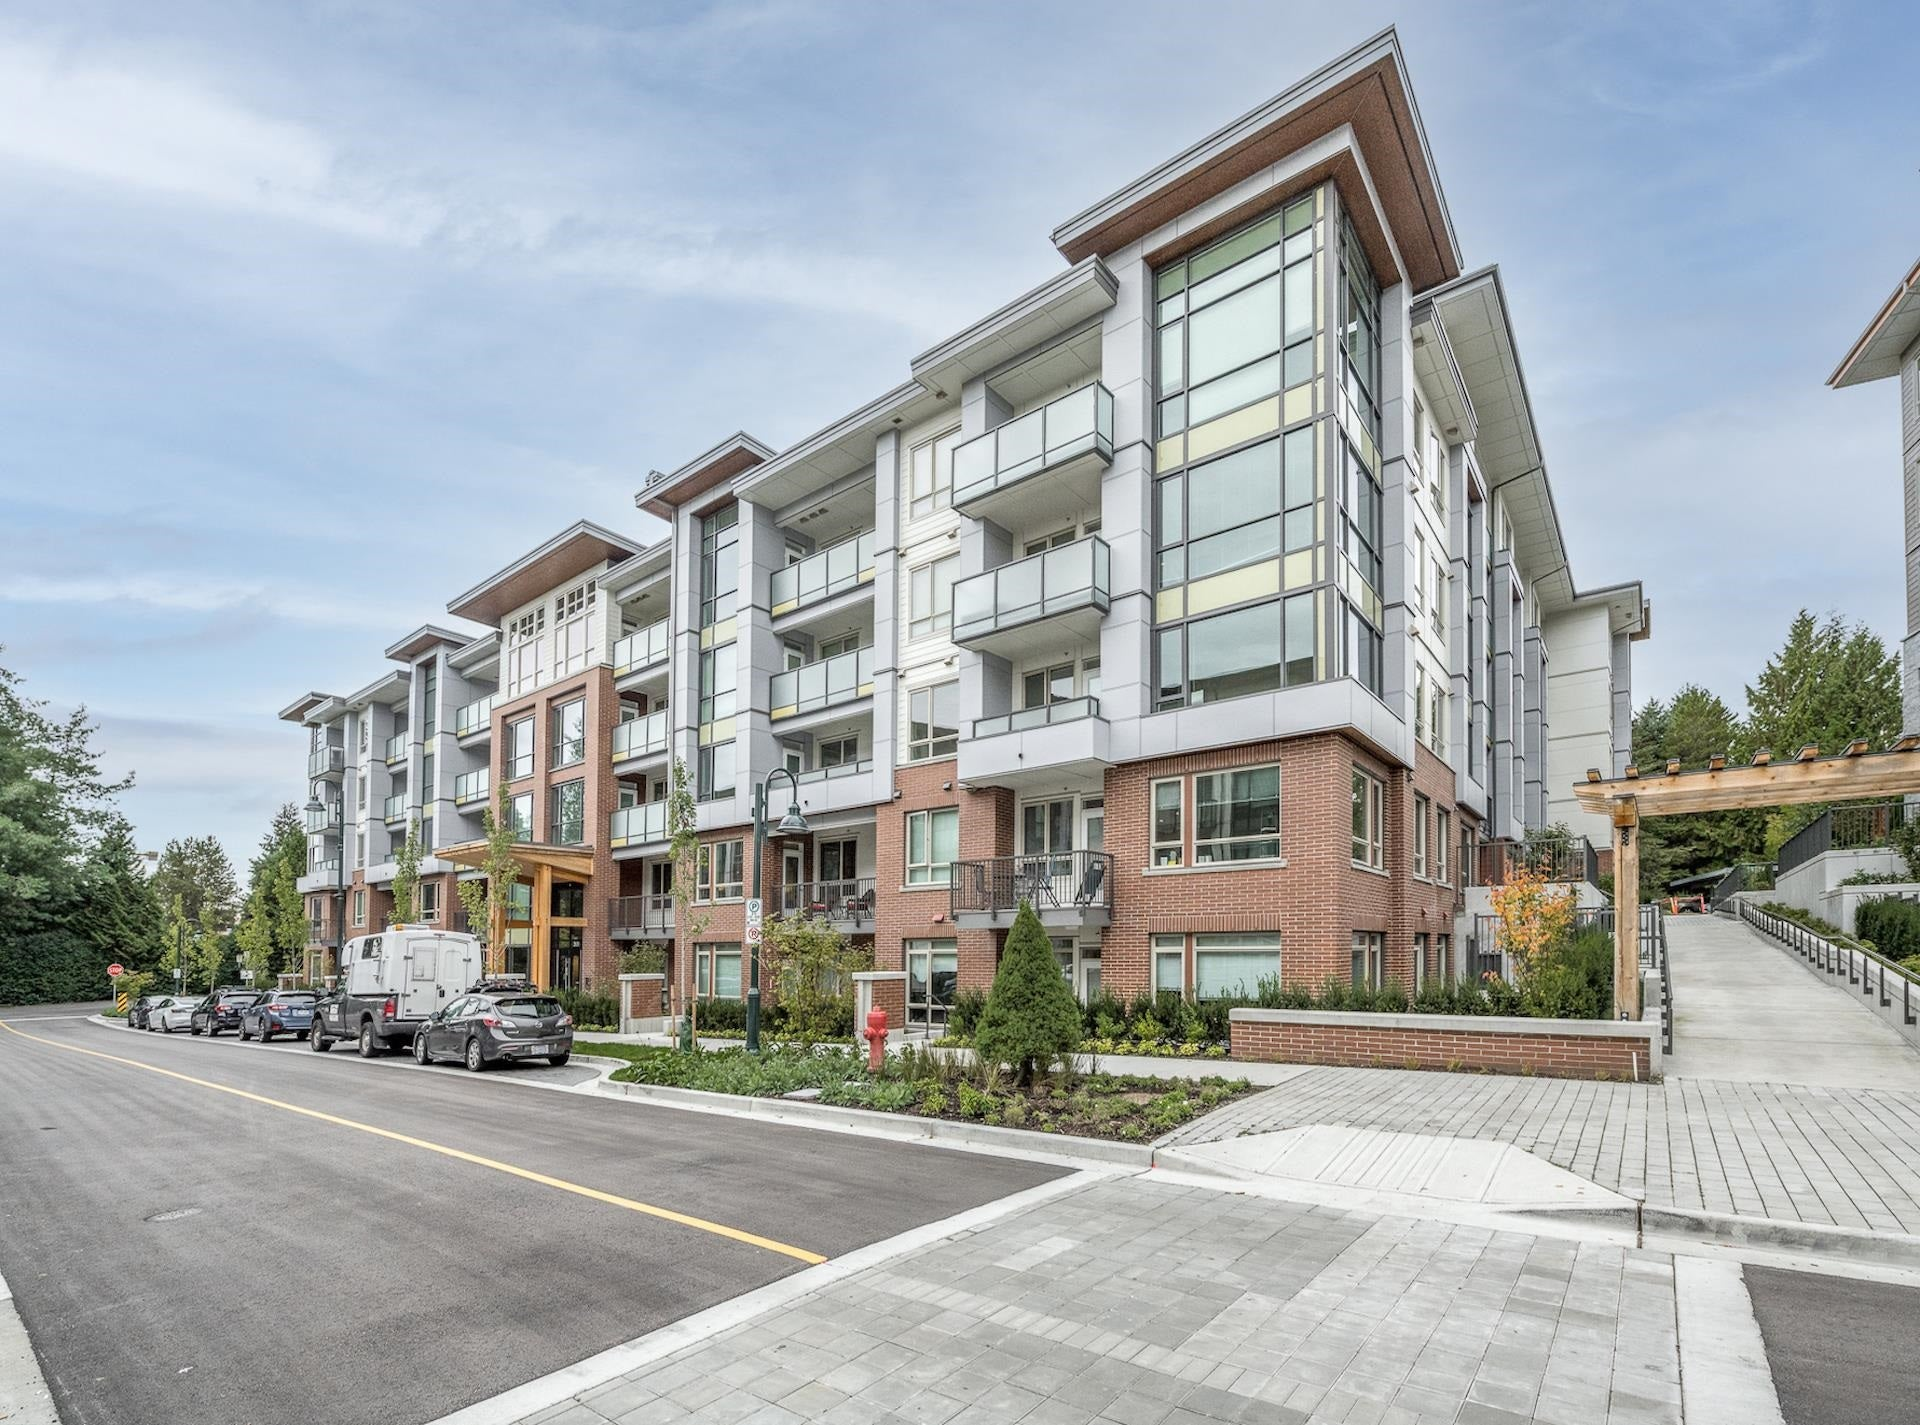 219 2651 LIBRARY LANE - Lynn Valley Apartment/Condo for sale, 2 Bedrooms (R2623232) - #22